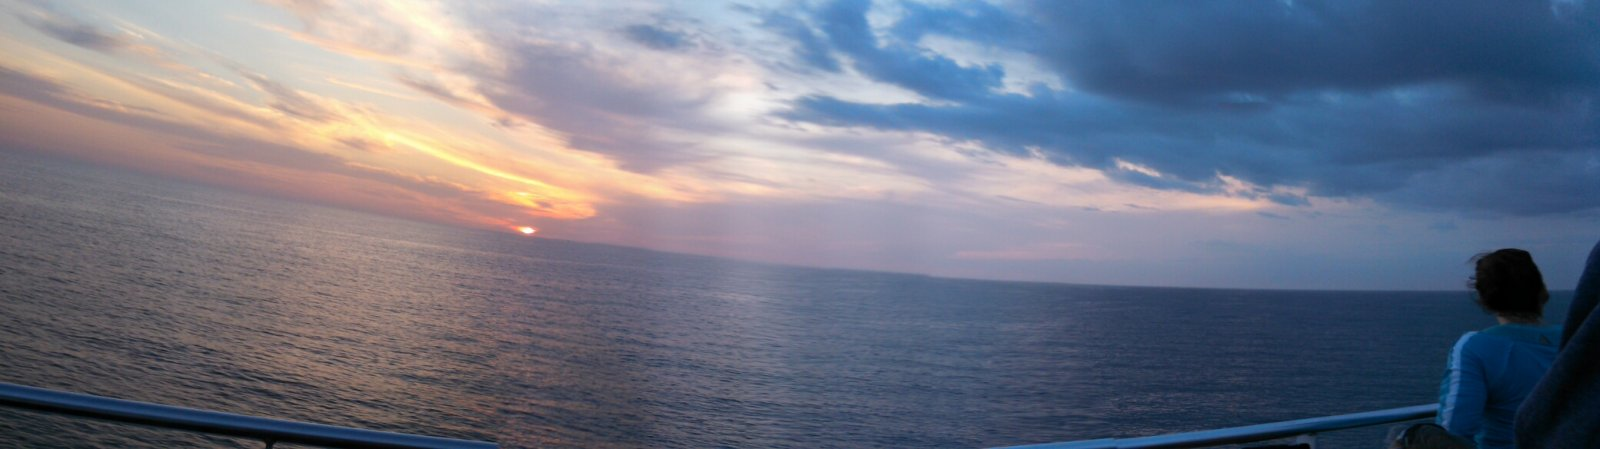 Click image for larger version  Name:Panoramic sunset.jpg Views:43 Size:89.3 KB ID:36979